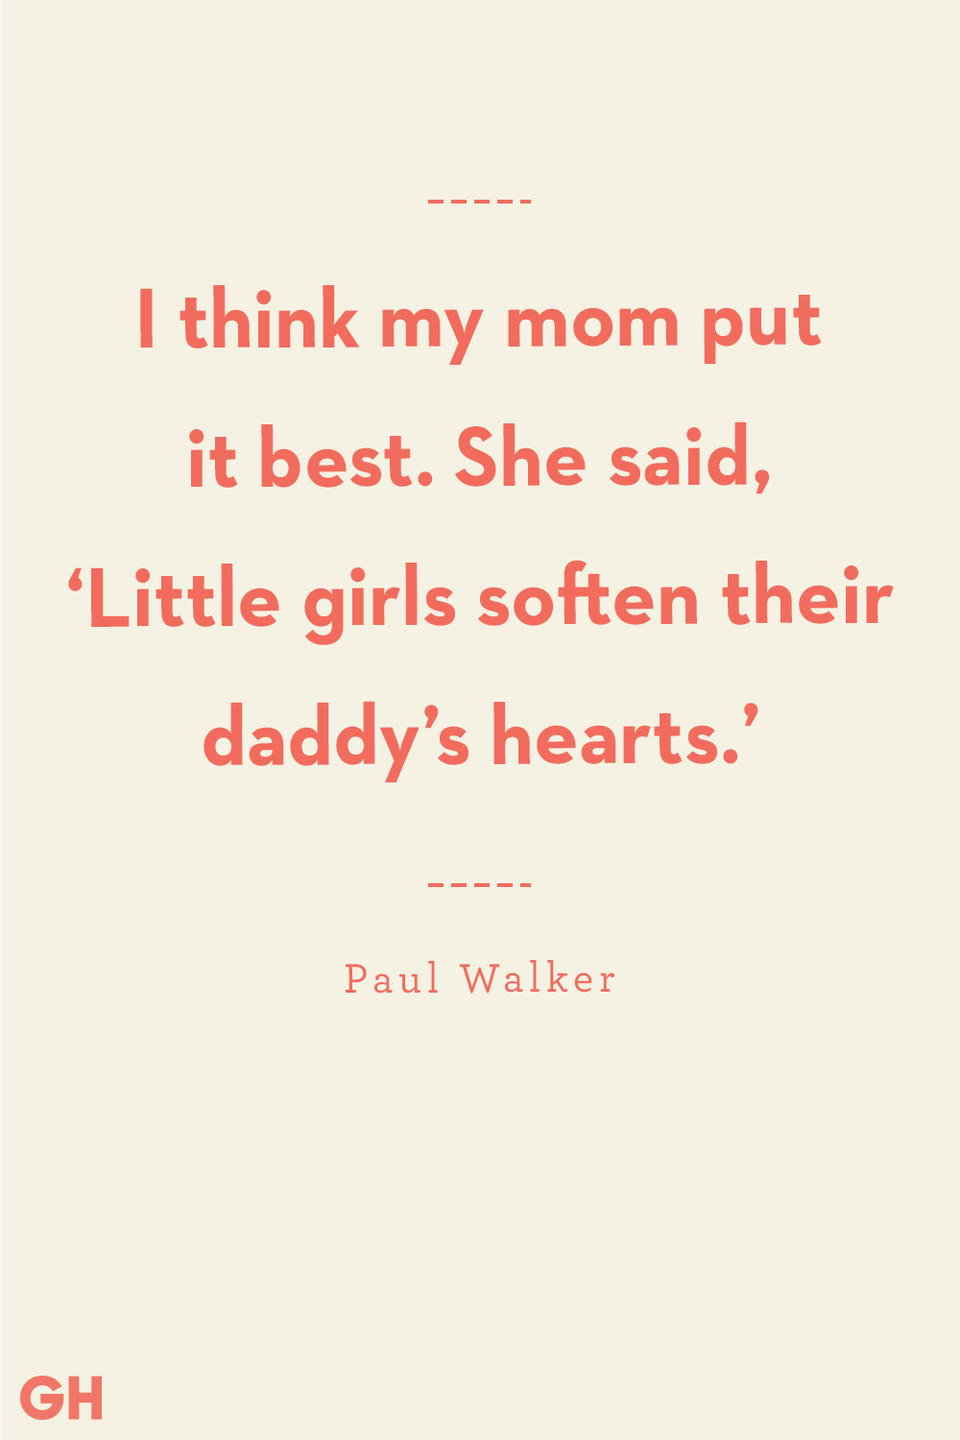 """<p>I think my mom put it best. She said, 'Little girls soften their daddy's hearts.'</p><p><strong>RELATED:</strong> <a href=""""https://www.goodhousekeeping.com/life/g27357068/grandpa-quotes/"""" rel=""""nofollow noopener"""" target=""""_blank"""" data-ylk=""""slk:Grandpa Quotes to Honor Your Papa on Father's Day (And Every Day)"""" class=""""link rapid-noclick-resp"""">Grandpa Quotes to Honor Your Papa on Father's Day (And Every Day)</a></p>"""